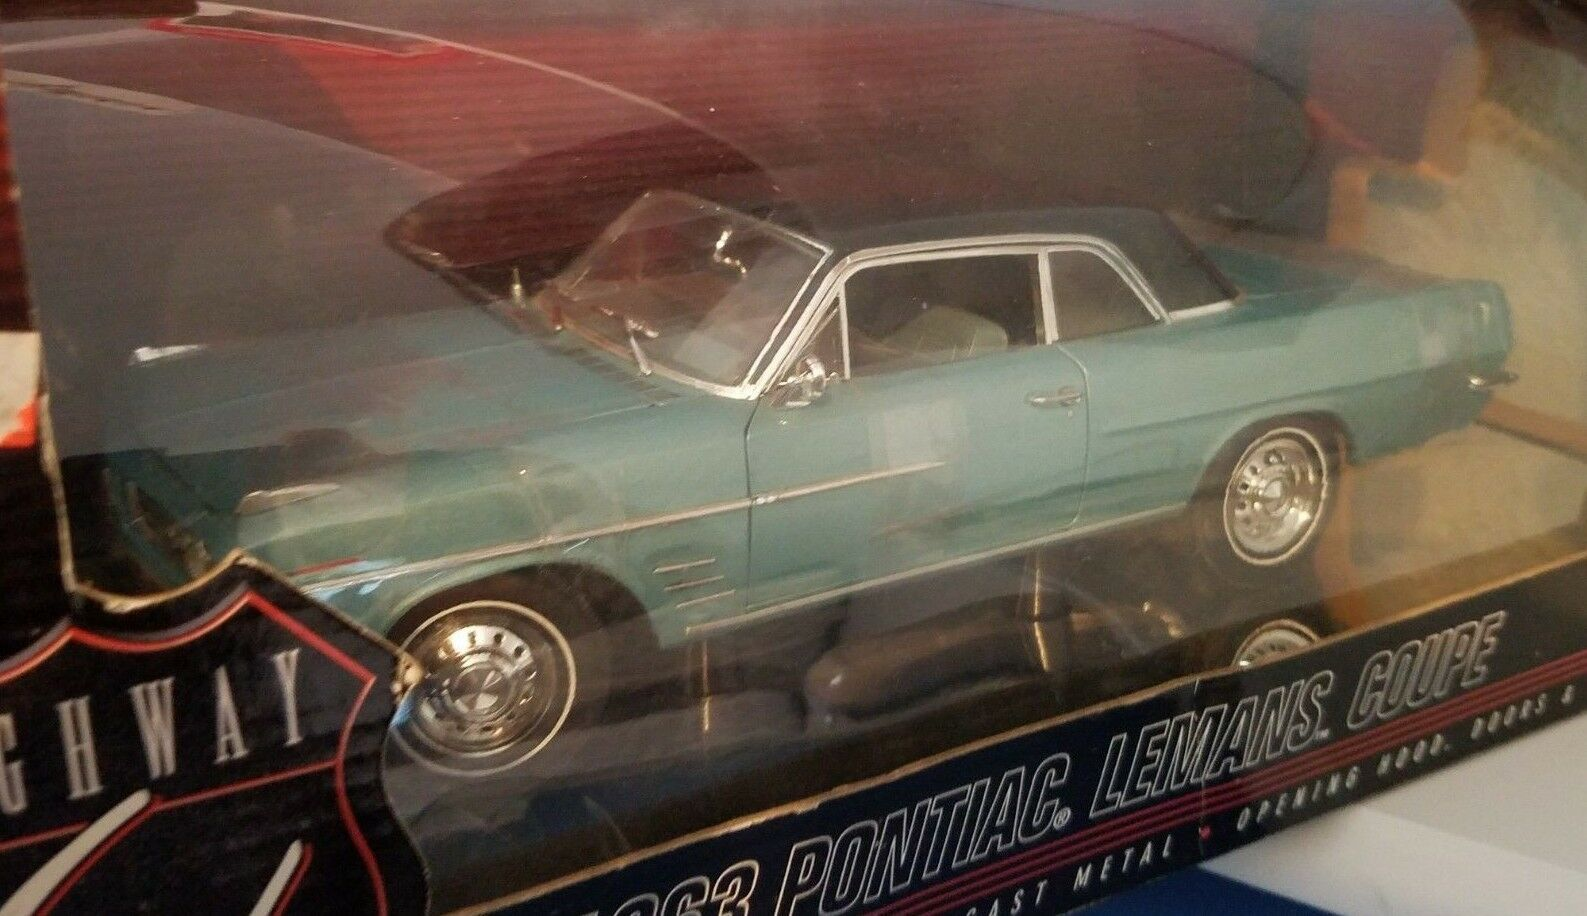 1 18 HIGHWAY 61 1963 PONTIAC LEMANS COUPE AQUAMARINE pd